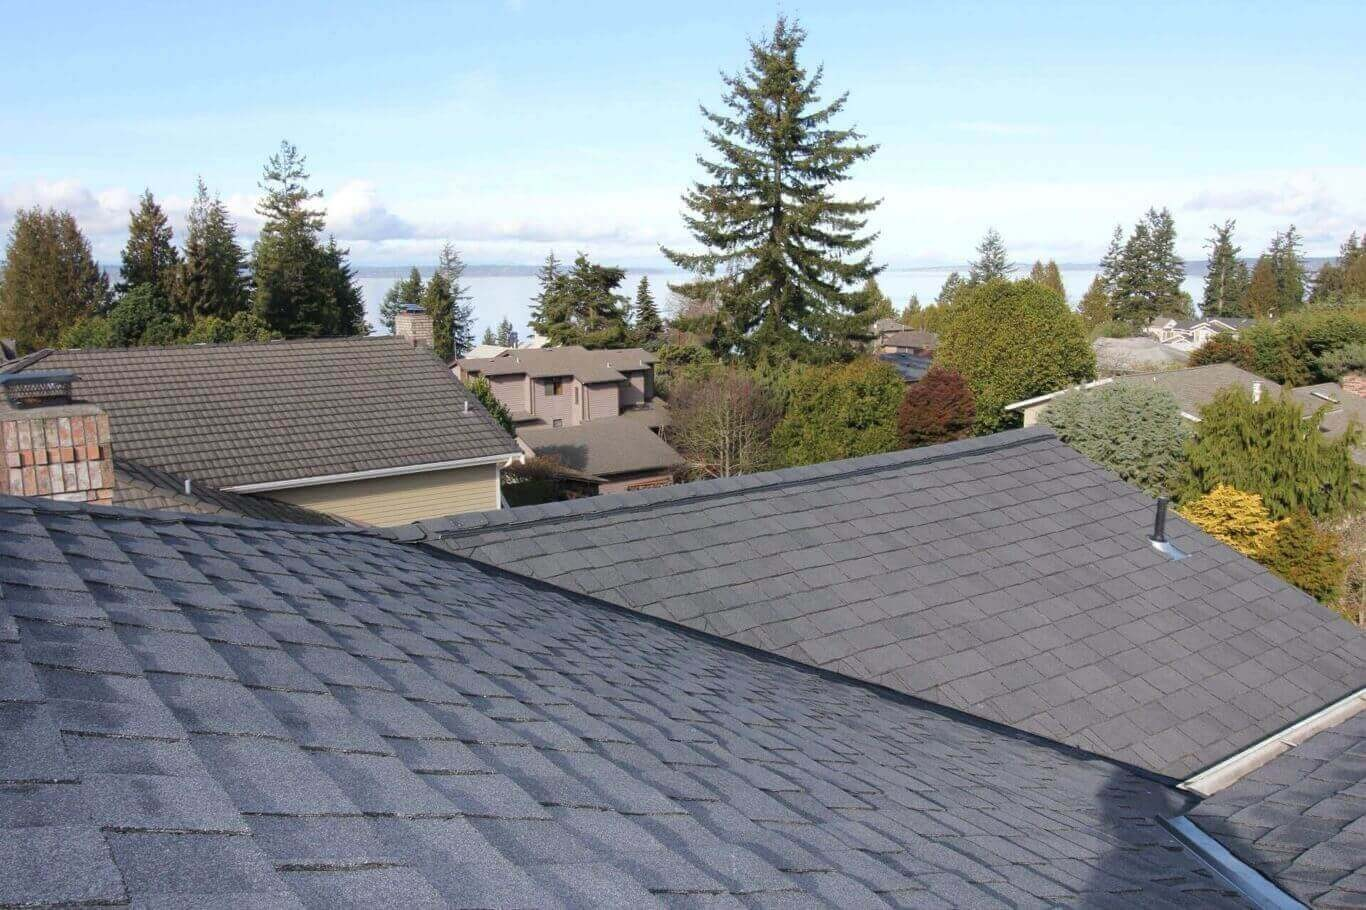 Edmonds Roofing Company. Local Licensed Emergency Water Leak Repairs and New Roof Replacements. Roofers Near Me.